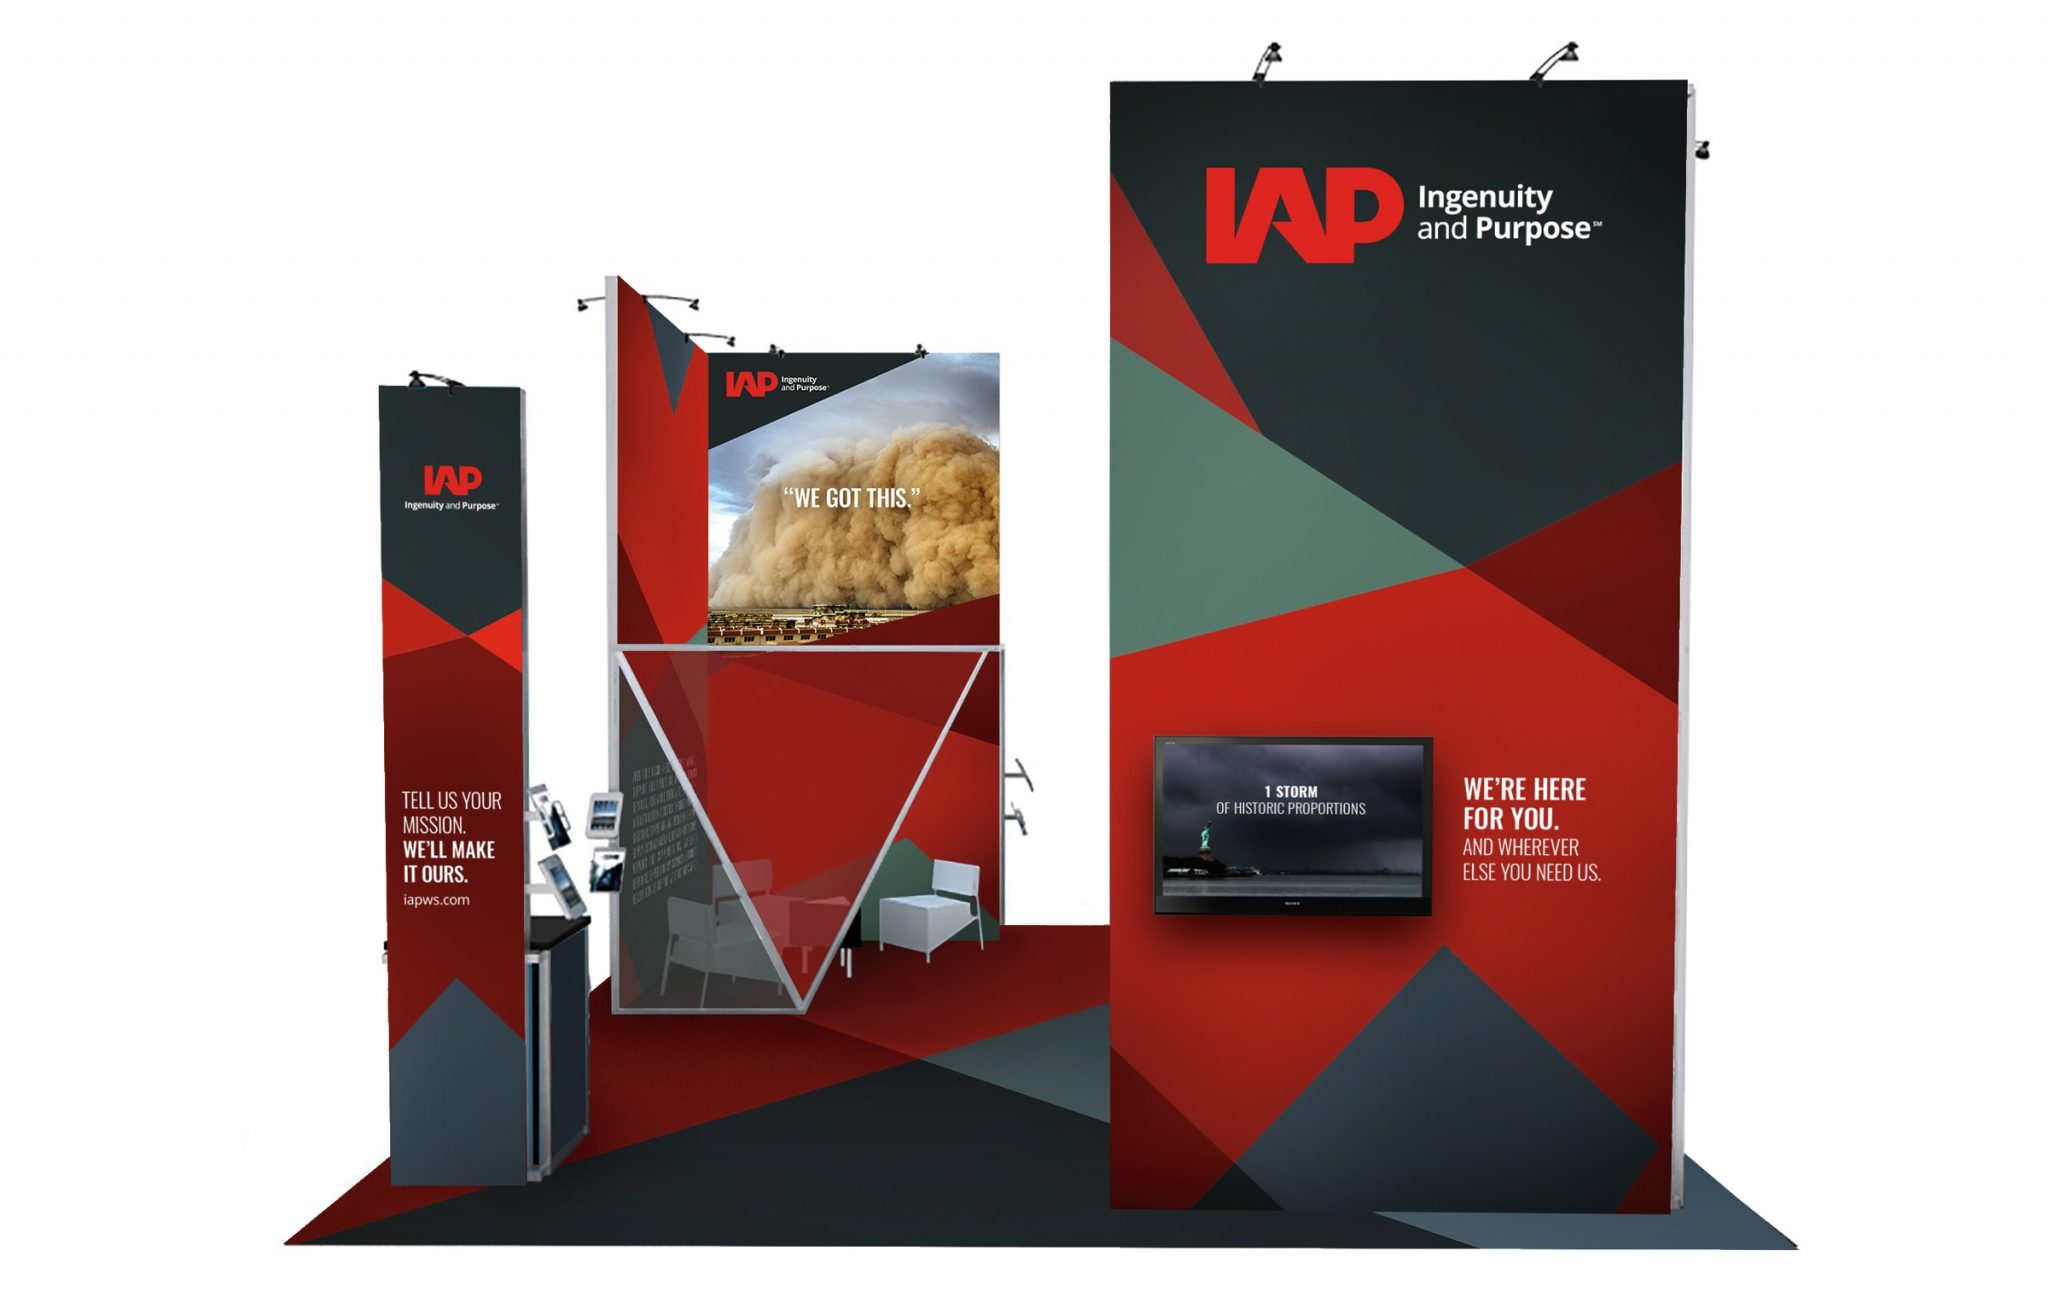 Display advertisement at a tradeshow booth for IAP's brand launch featuring top quality brand identity.